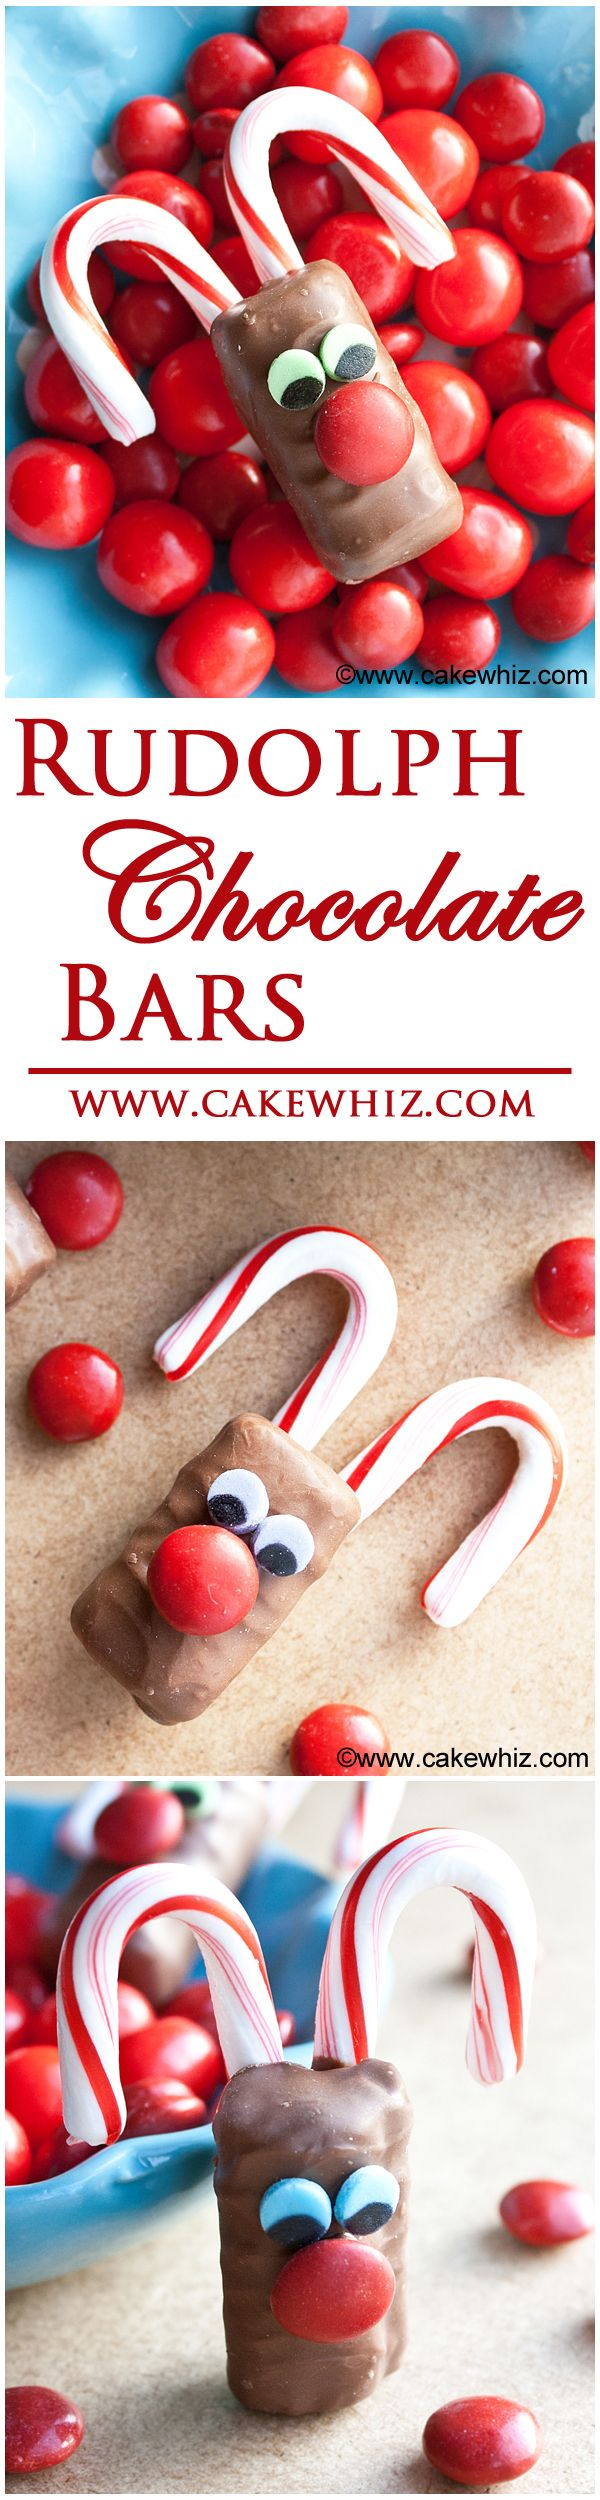 Christmas Treat Ideas 41